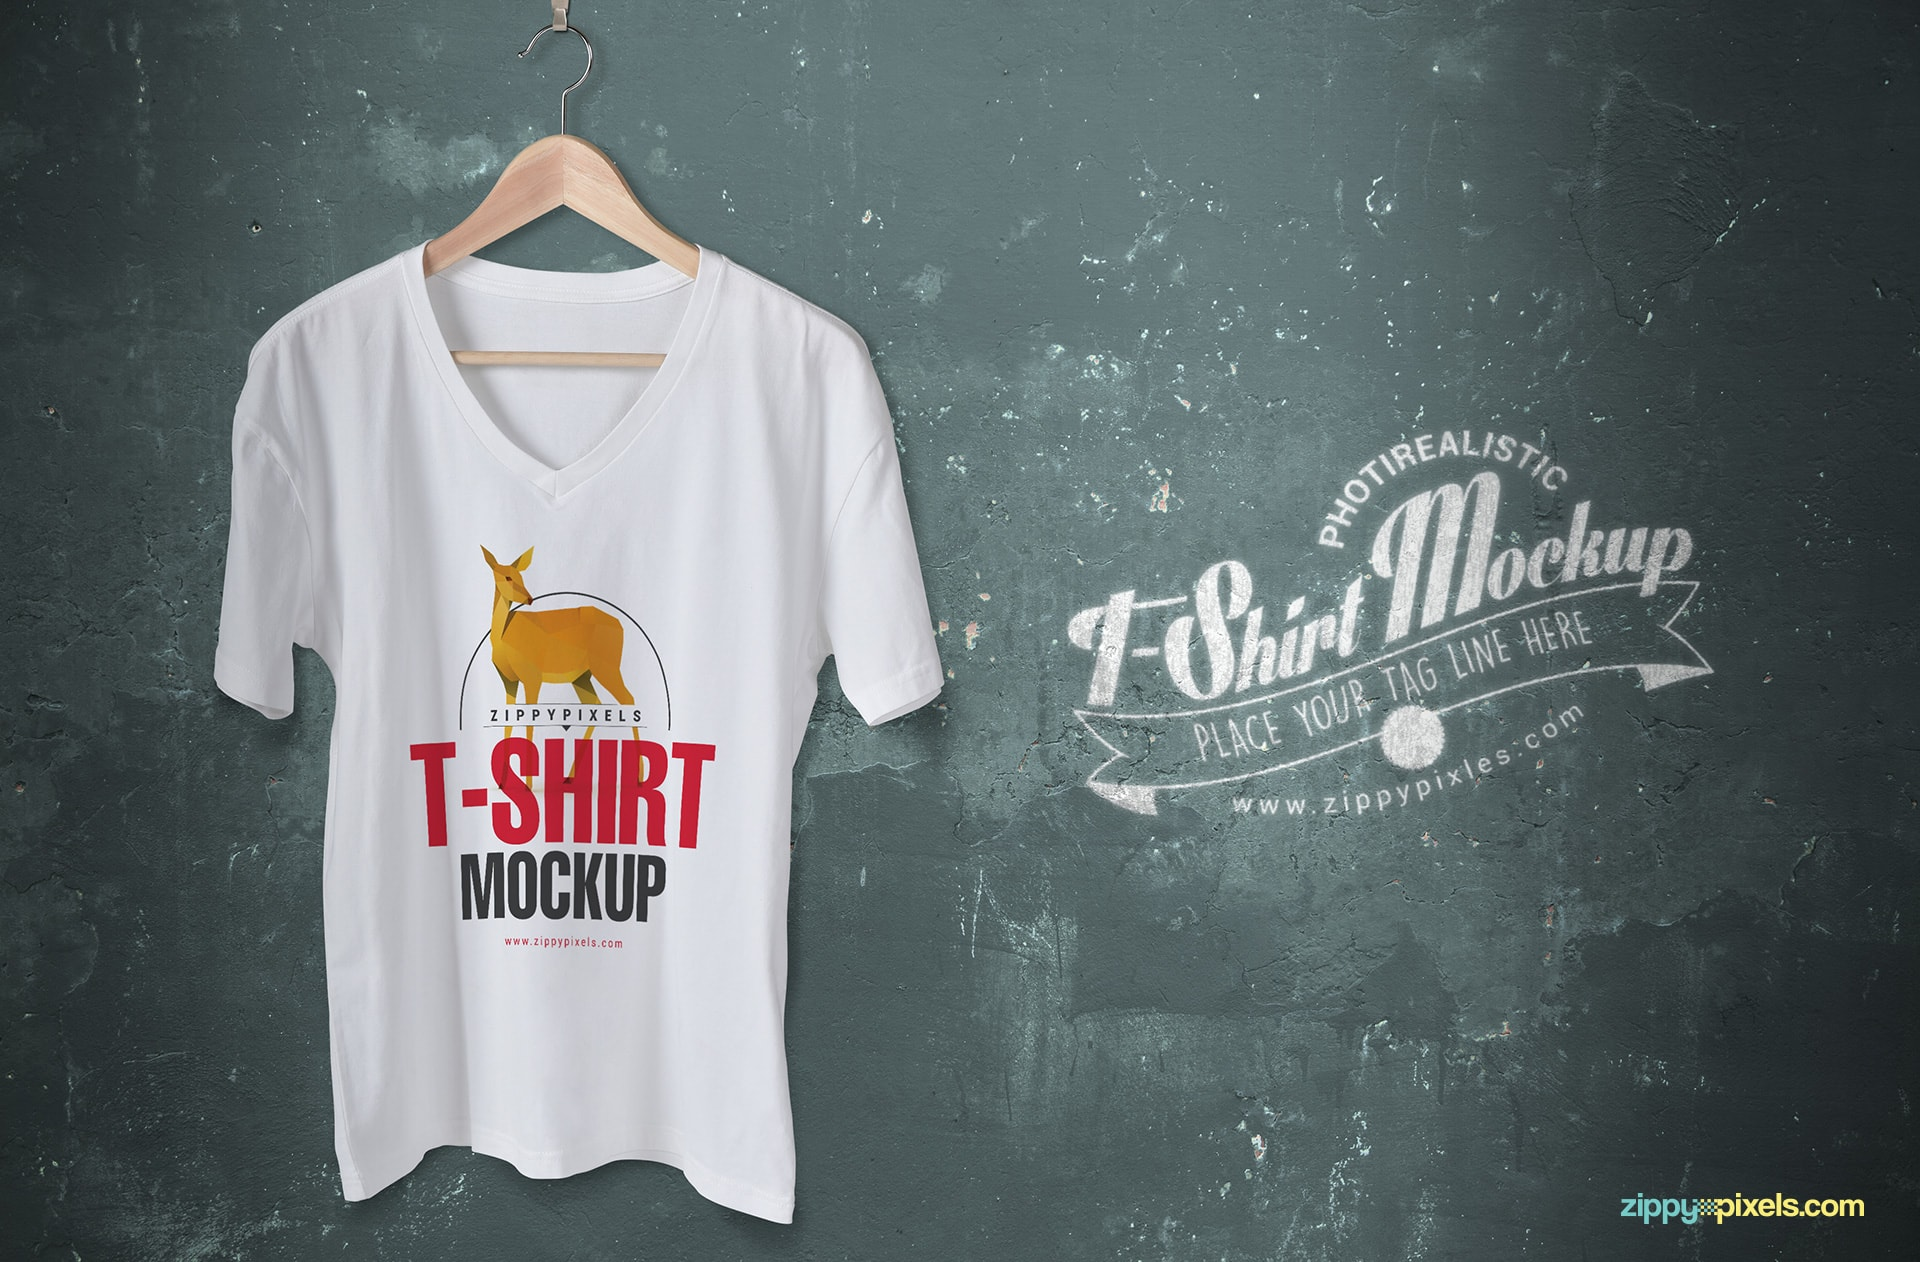 Give a trendy flare to your t-shirt designs with this free v-neck tshirt mockup.